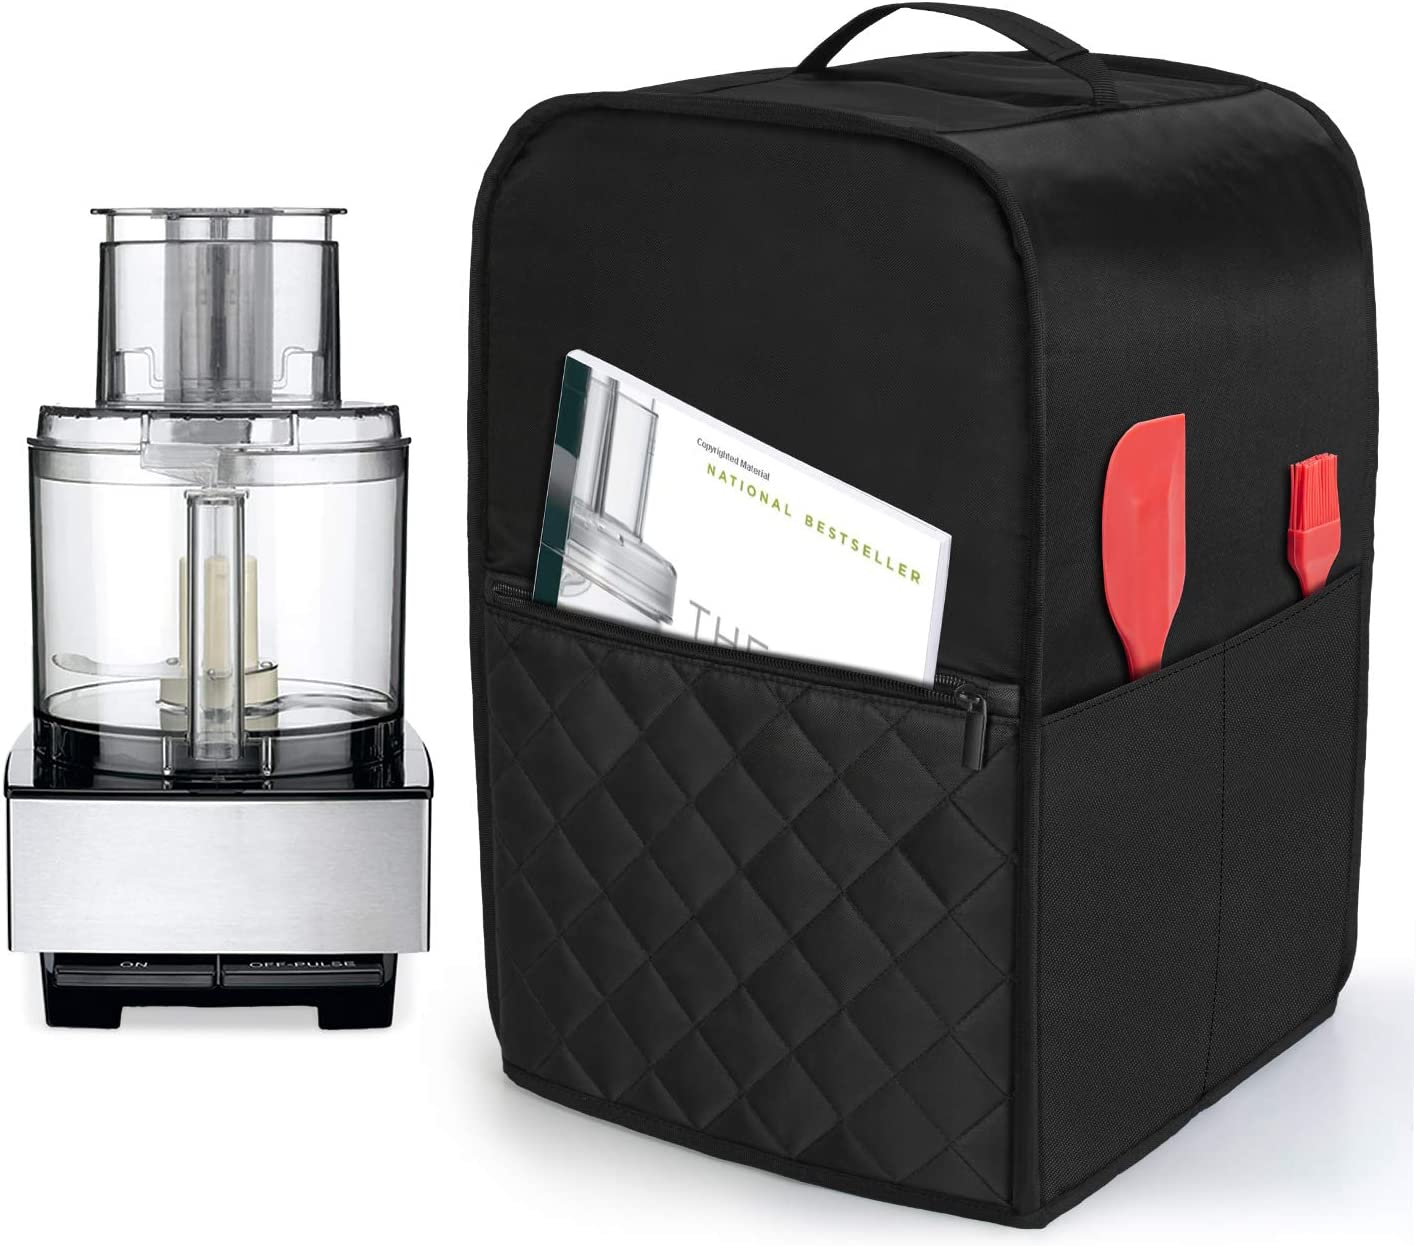 Luxja Food Processor Cover for Cuisinart and Hamilton Beach 11-14 Cup Processor, Food Processor Dust Cover with Accessories Pockets, Black